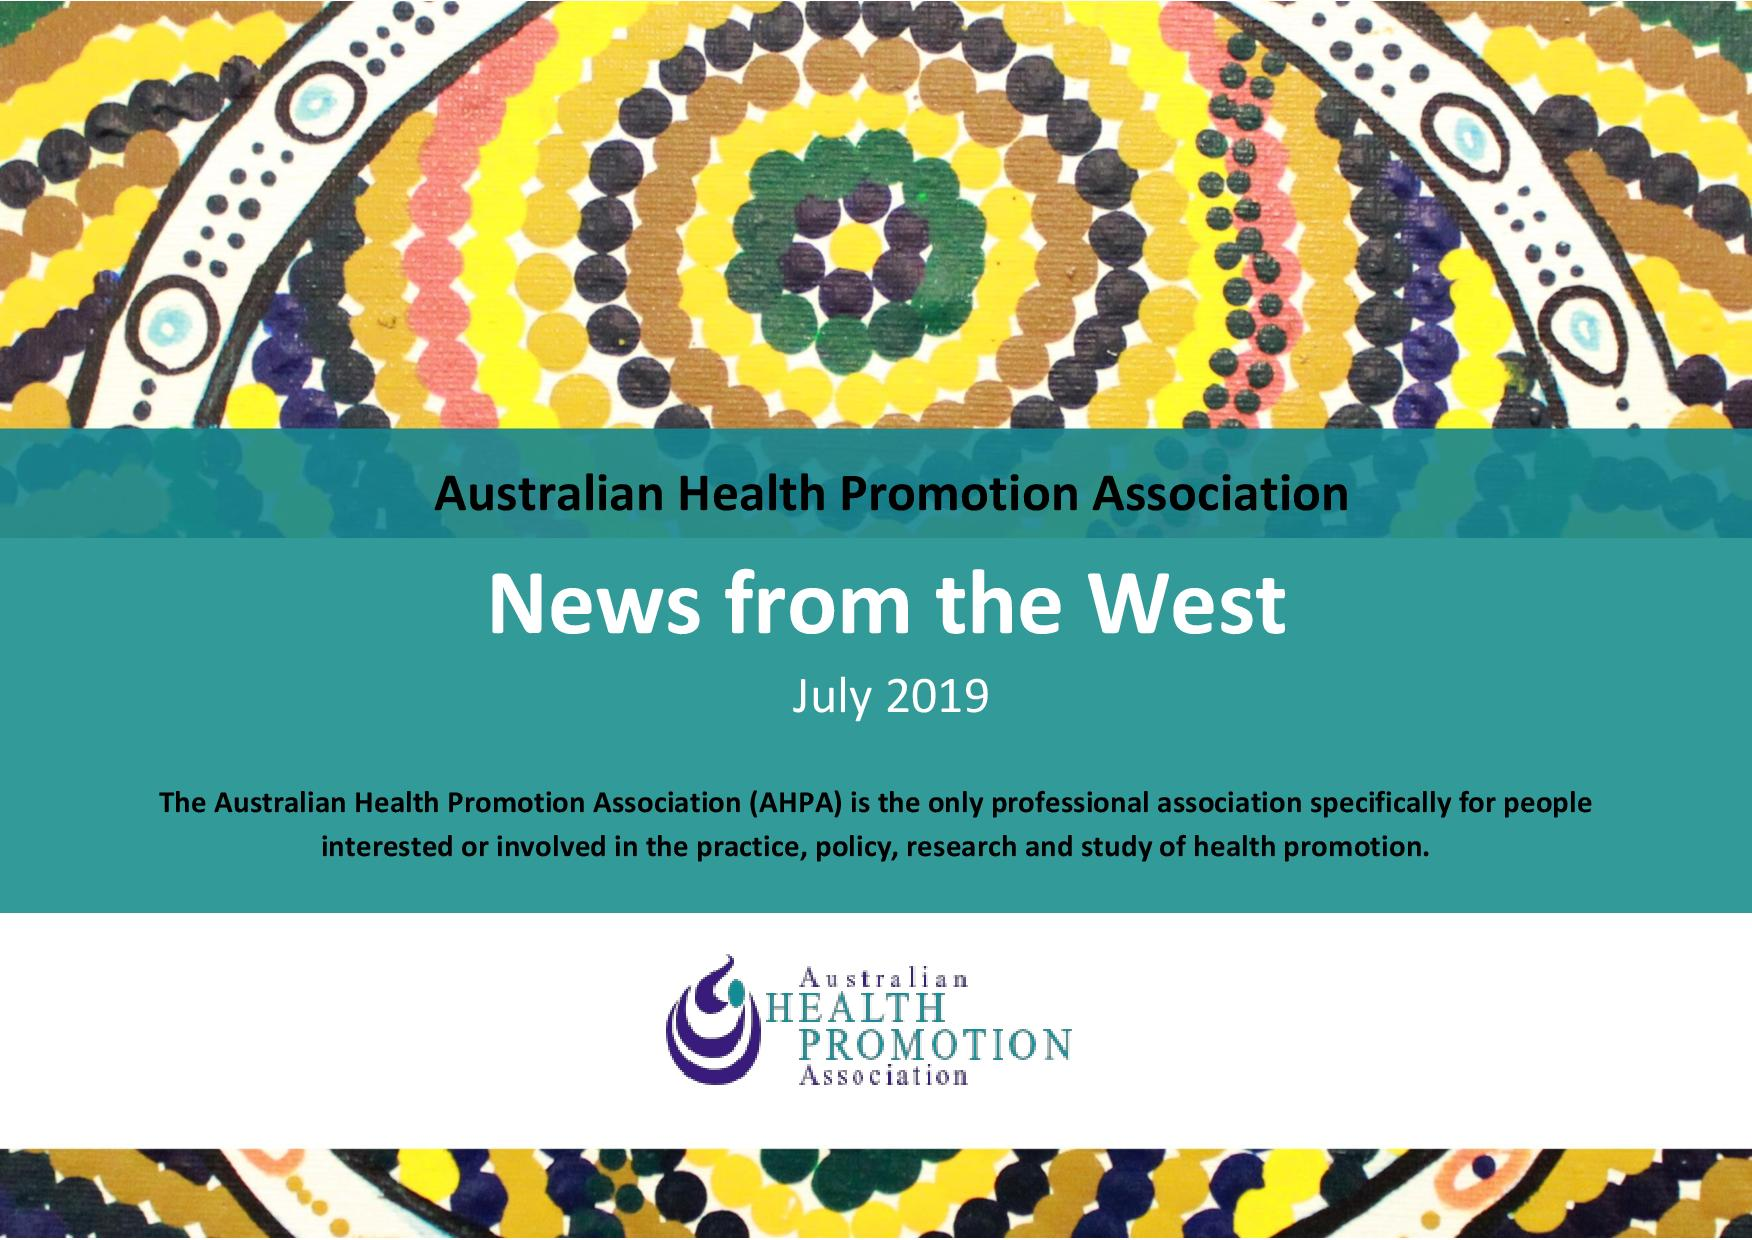 AHPA News from the west July 2019 page 001